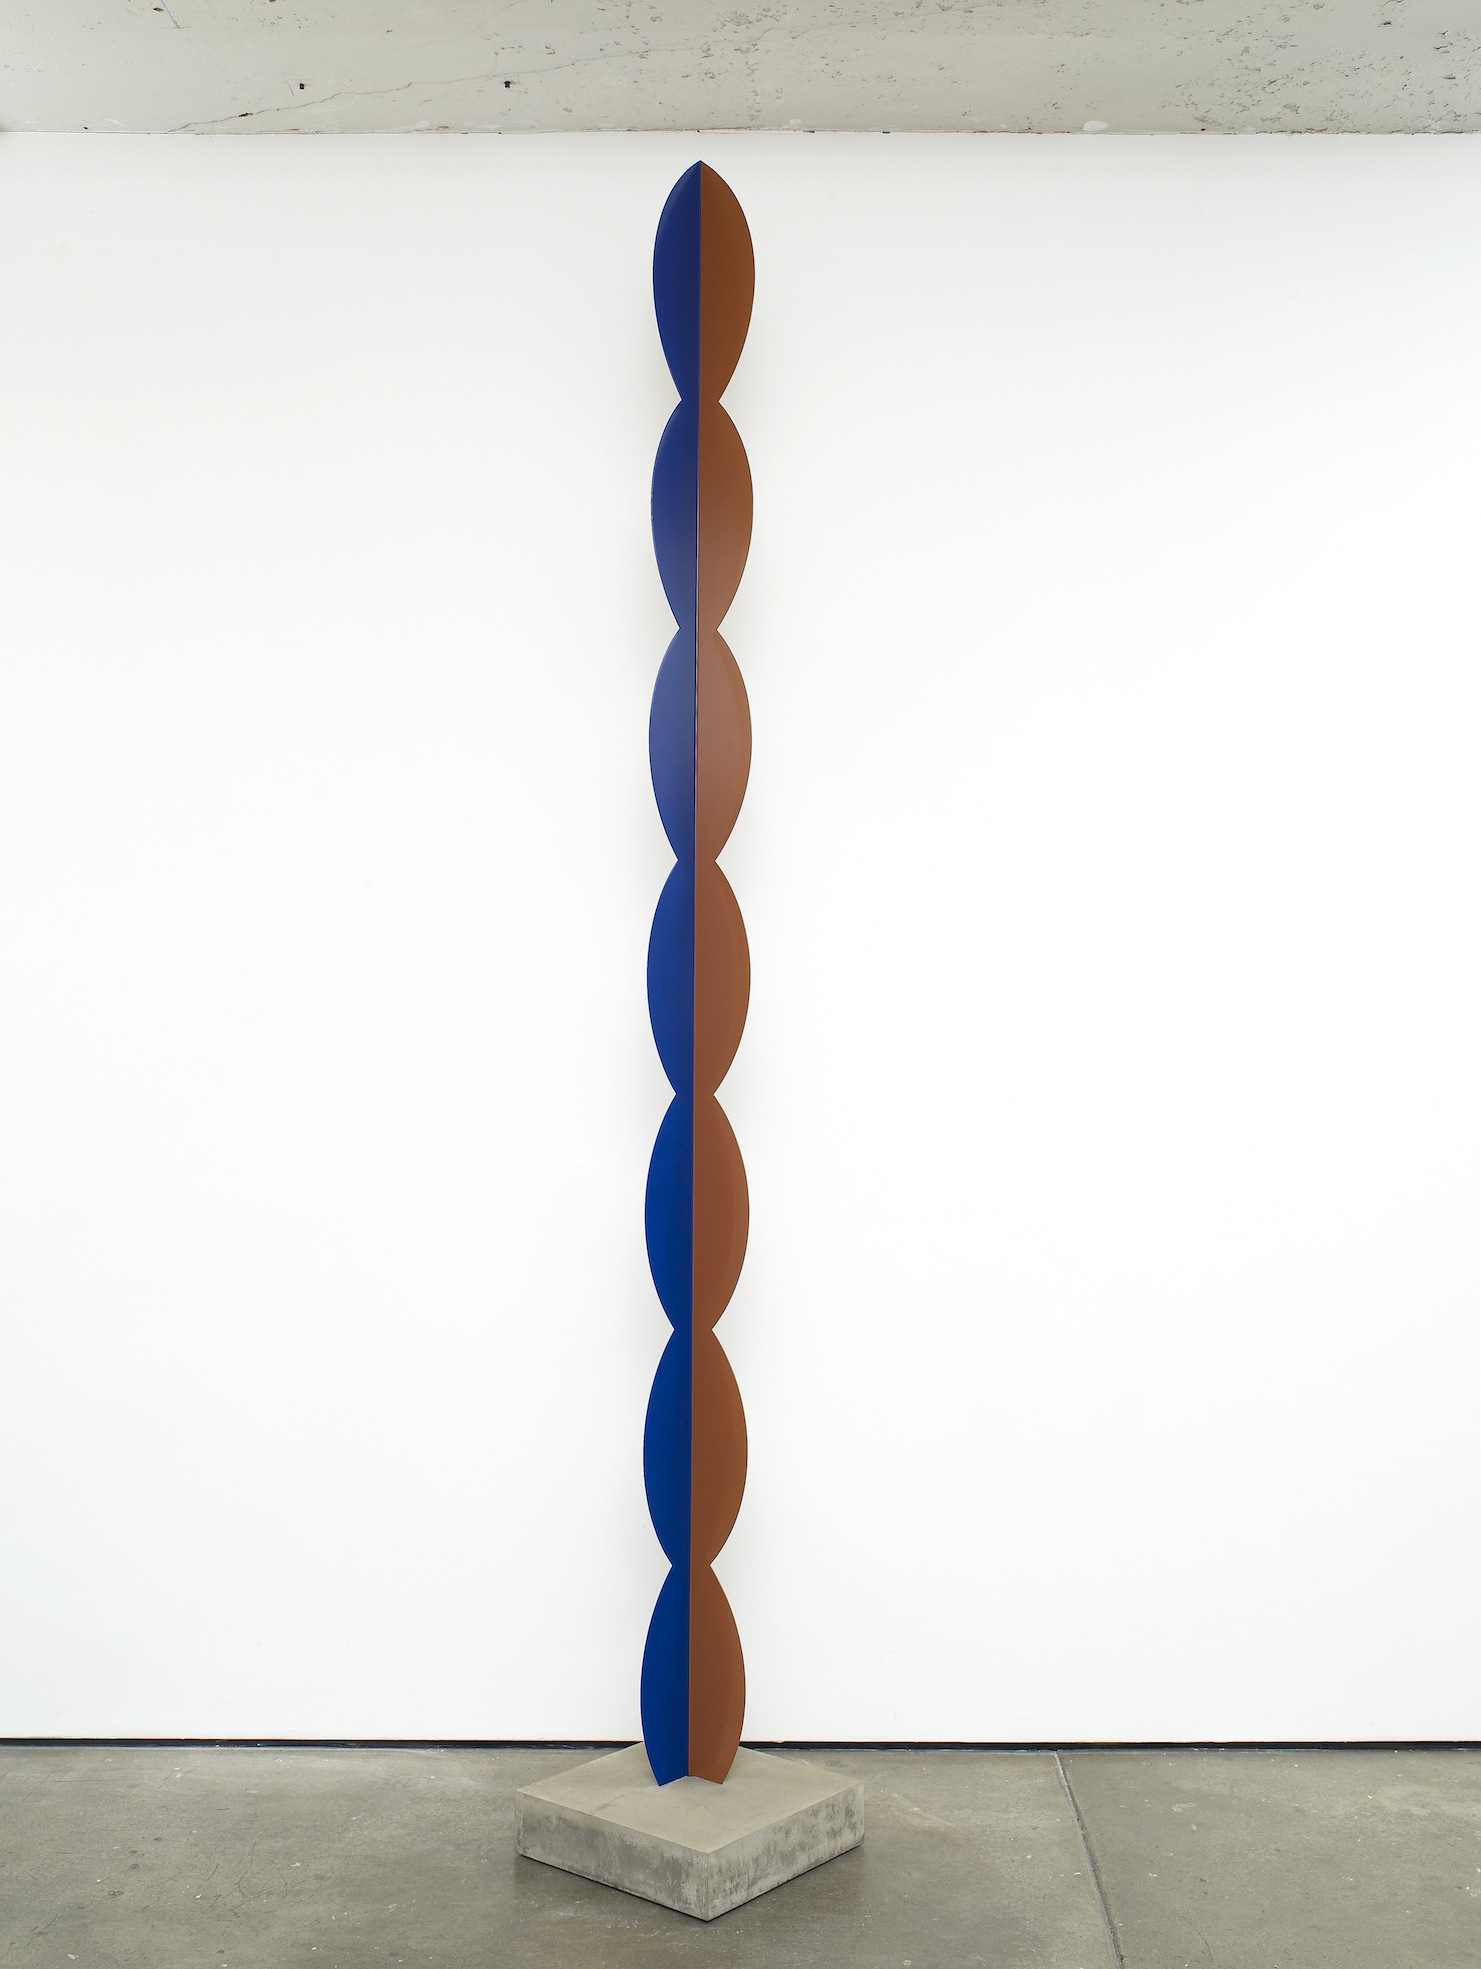 Kusine 2012 Painted steel, concrete 311 x 12 x 12 cm / 122.4 x 4.7 x 4.7 in